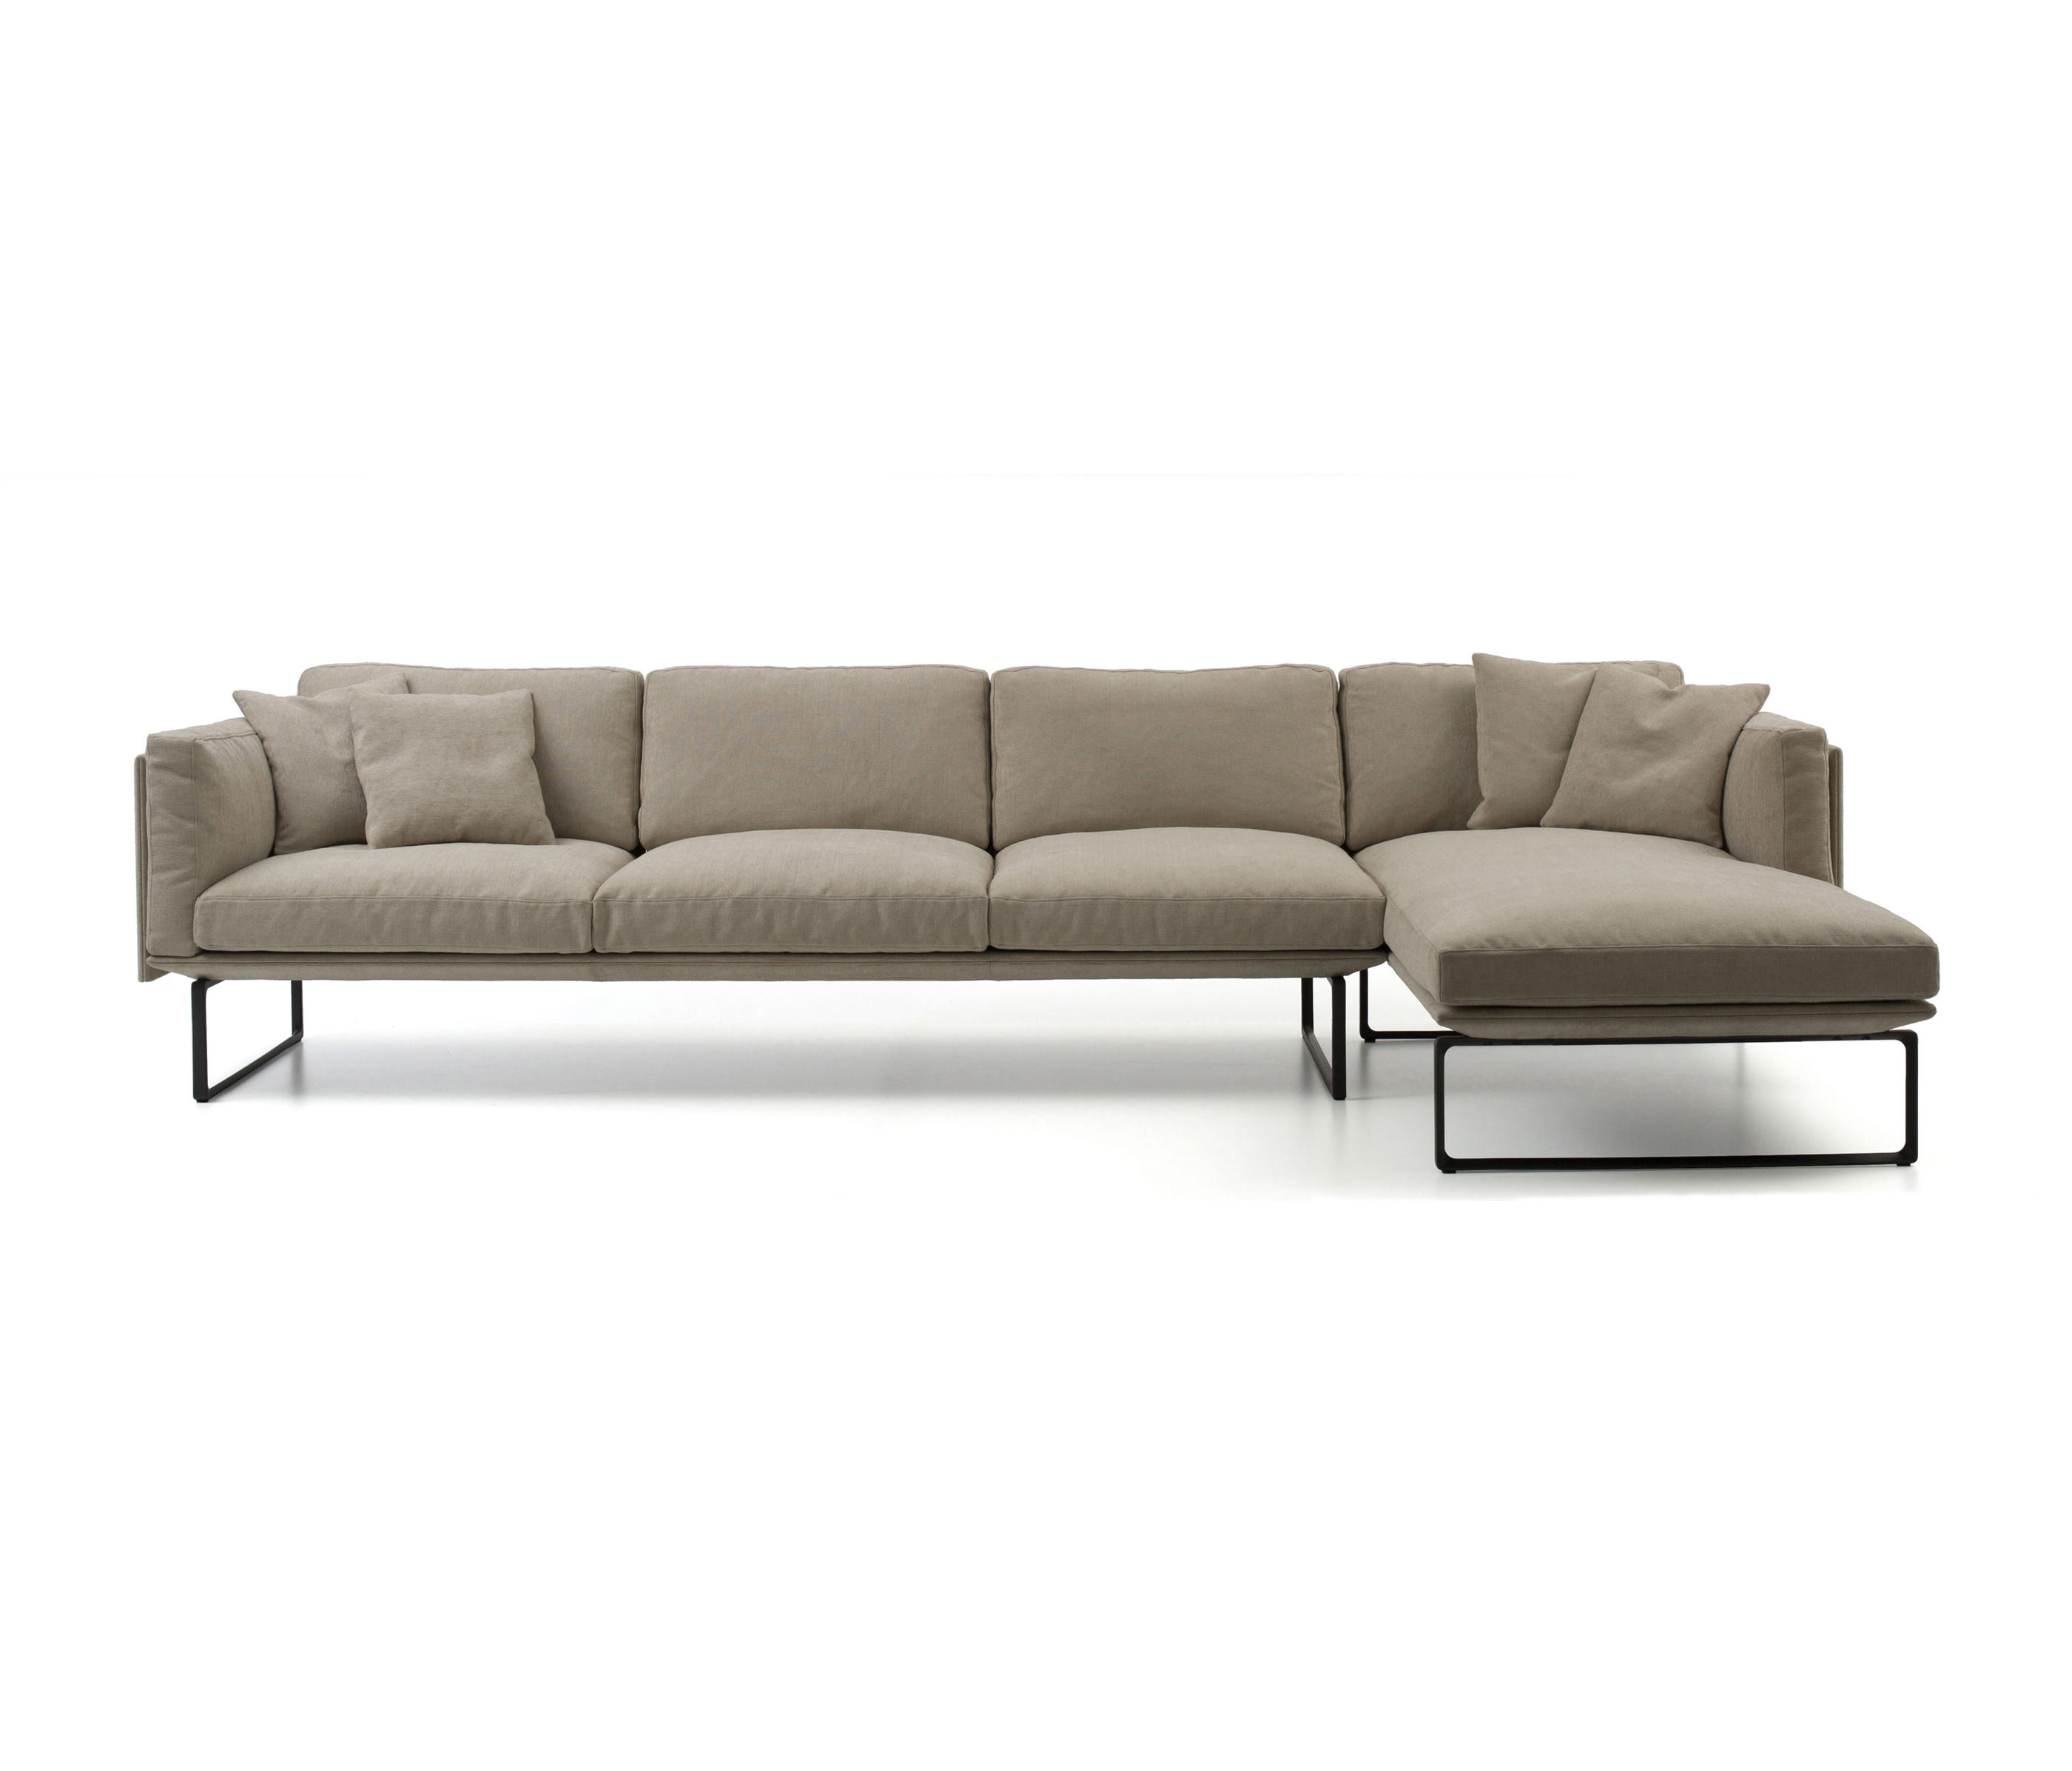 Piero Lissoni Modular Sofa 202 8 Sofas From Cassina Architonic